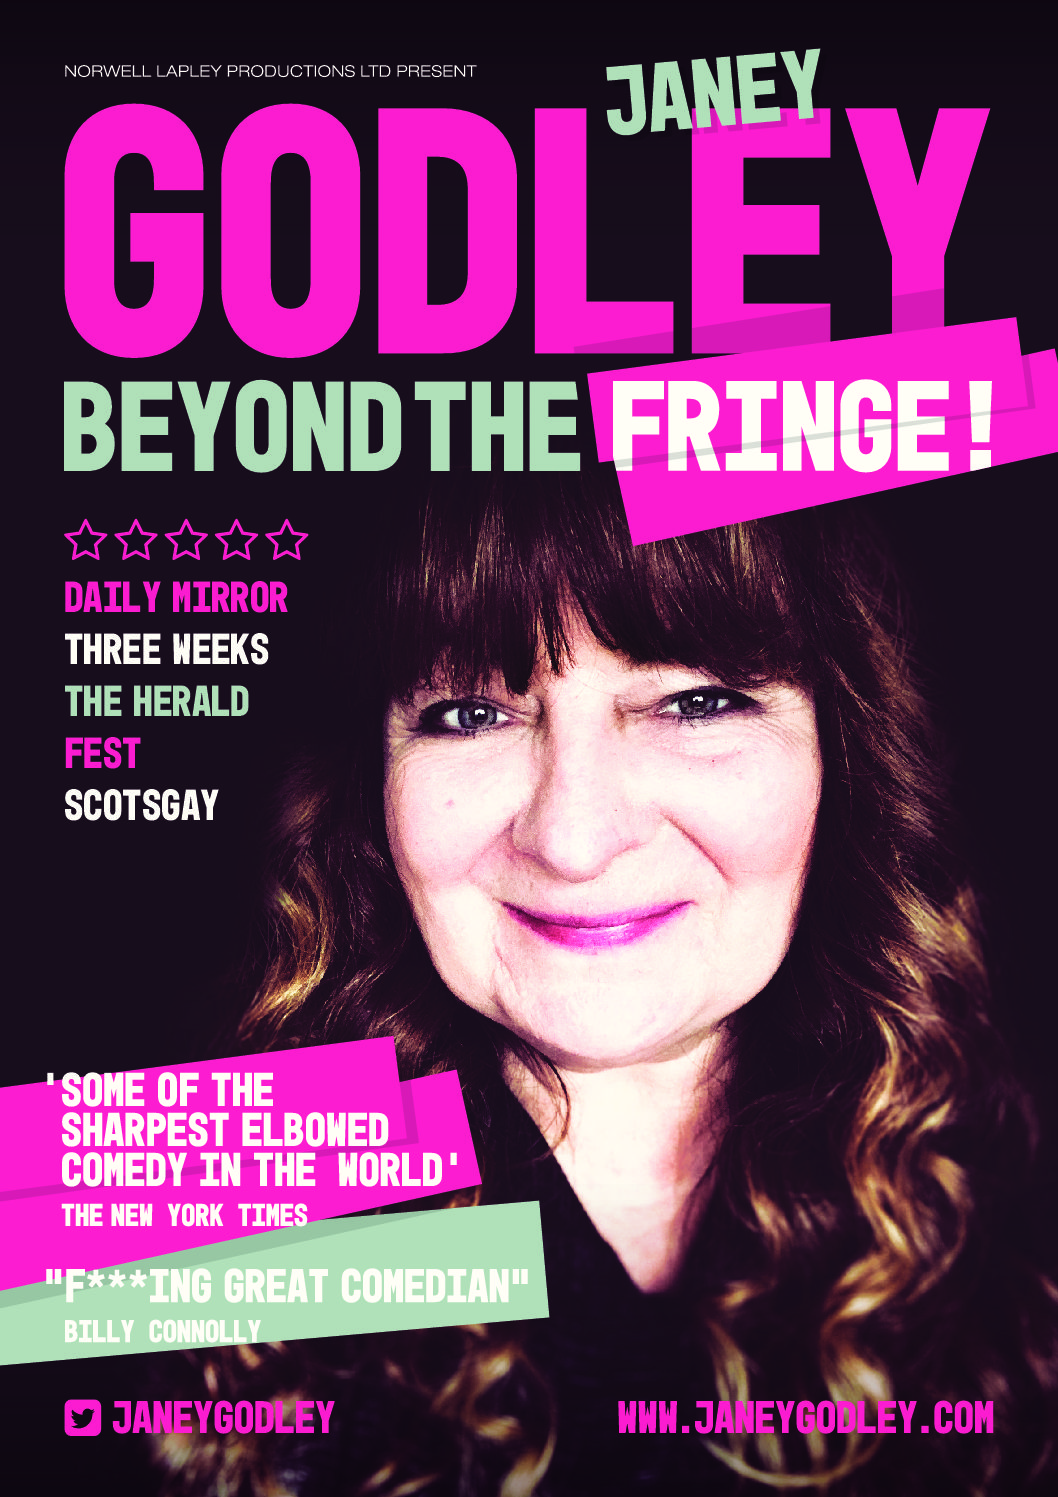 Janey Godley - Beyond The Fringe